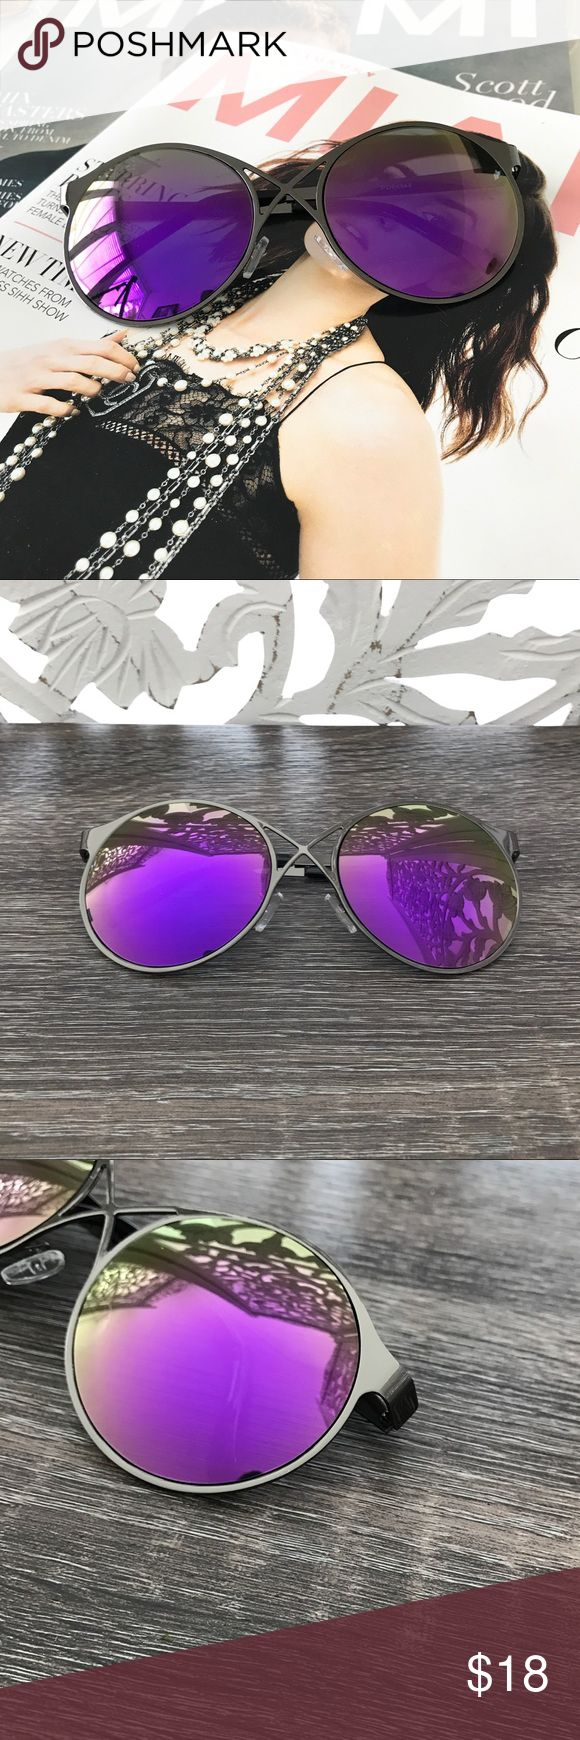 PURPLE MIRROR LENS SUNGLASSES Round Lens Front cross detail  Purple Mirror Lens Gunmetal grey frame  PRICE FIRM Style Link Miami Accessories Sunglasses